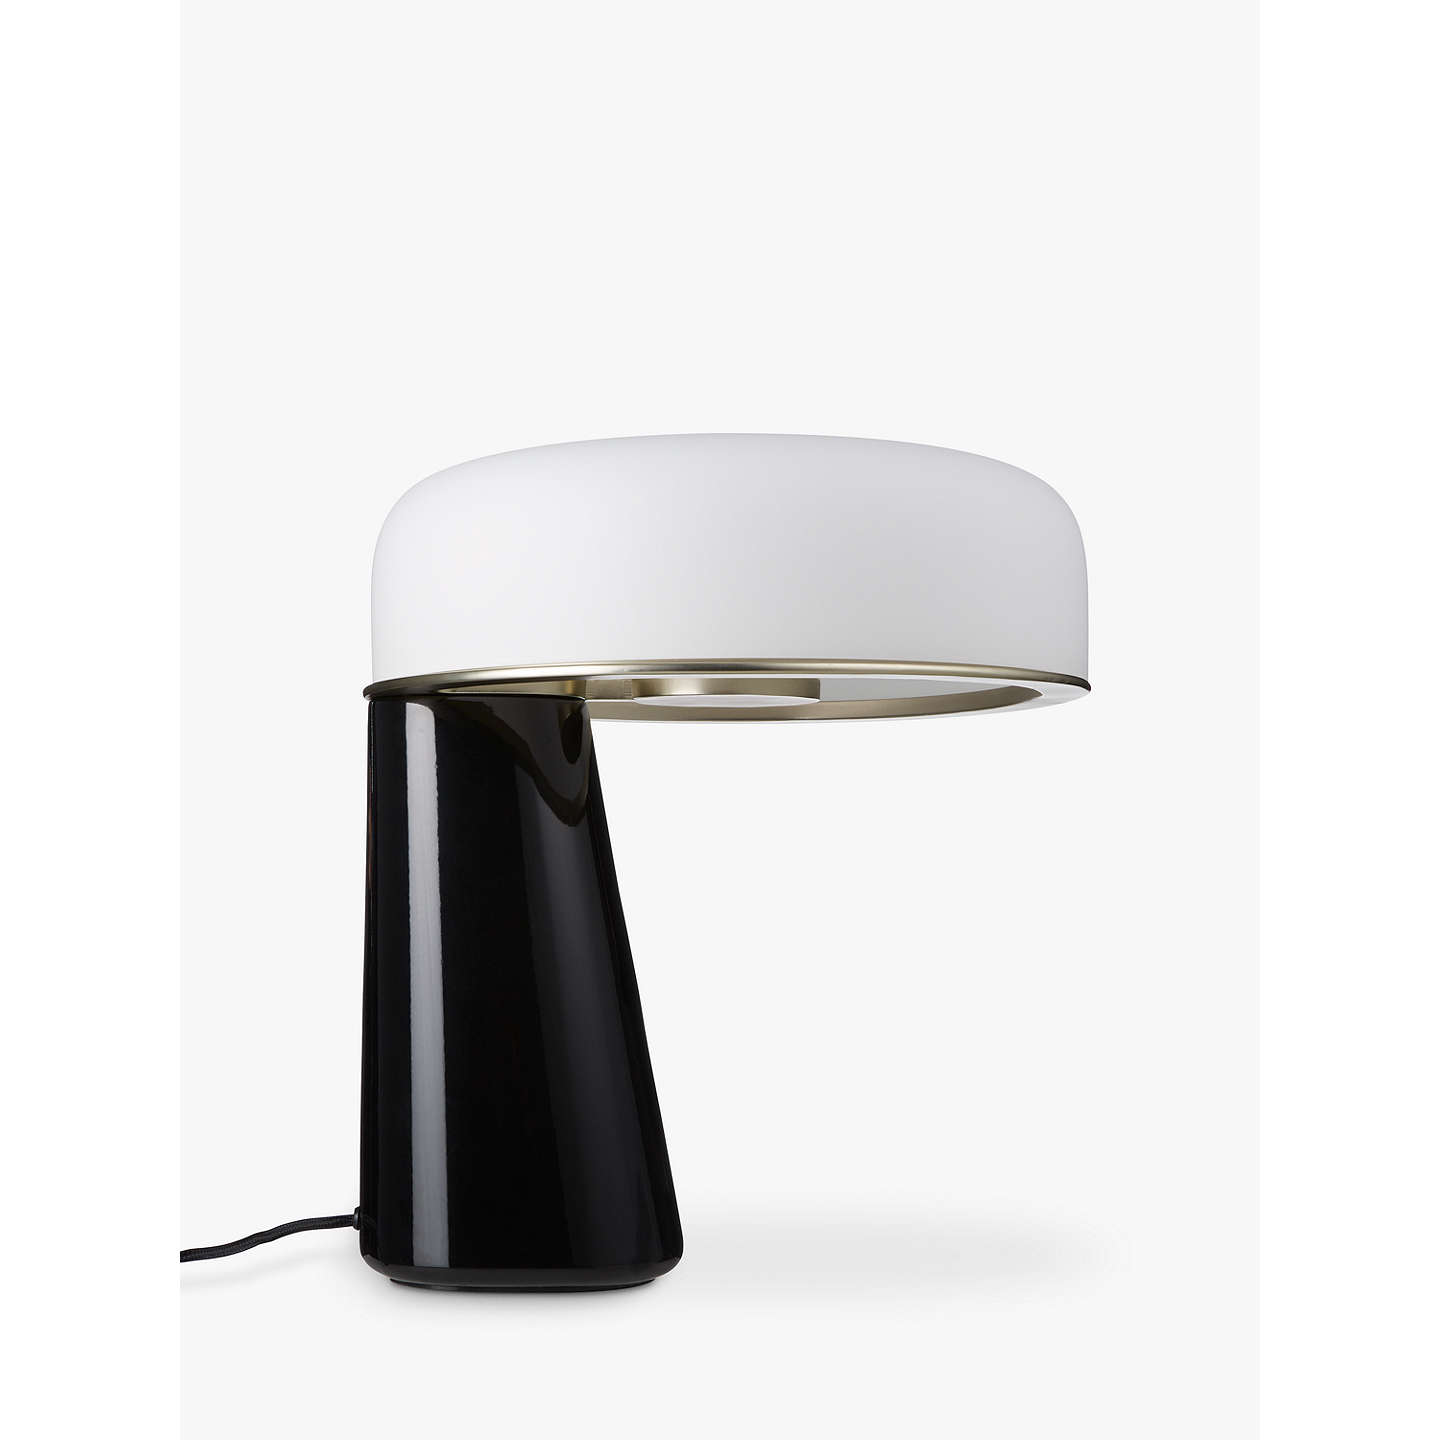 BuyDoshi Levien for John Lewis Open Home Falcon LED Table Lamp, Black Online at johnlewis.com